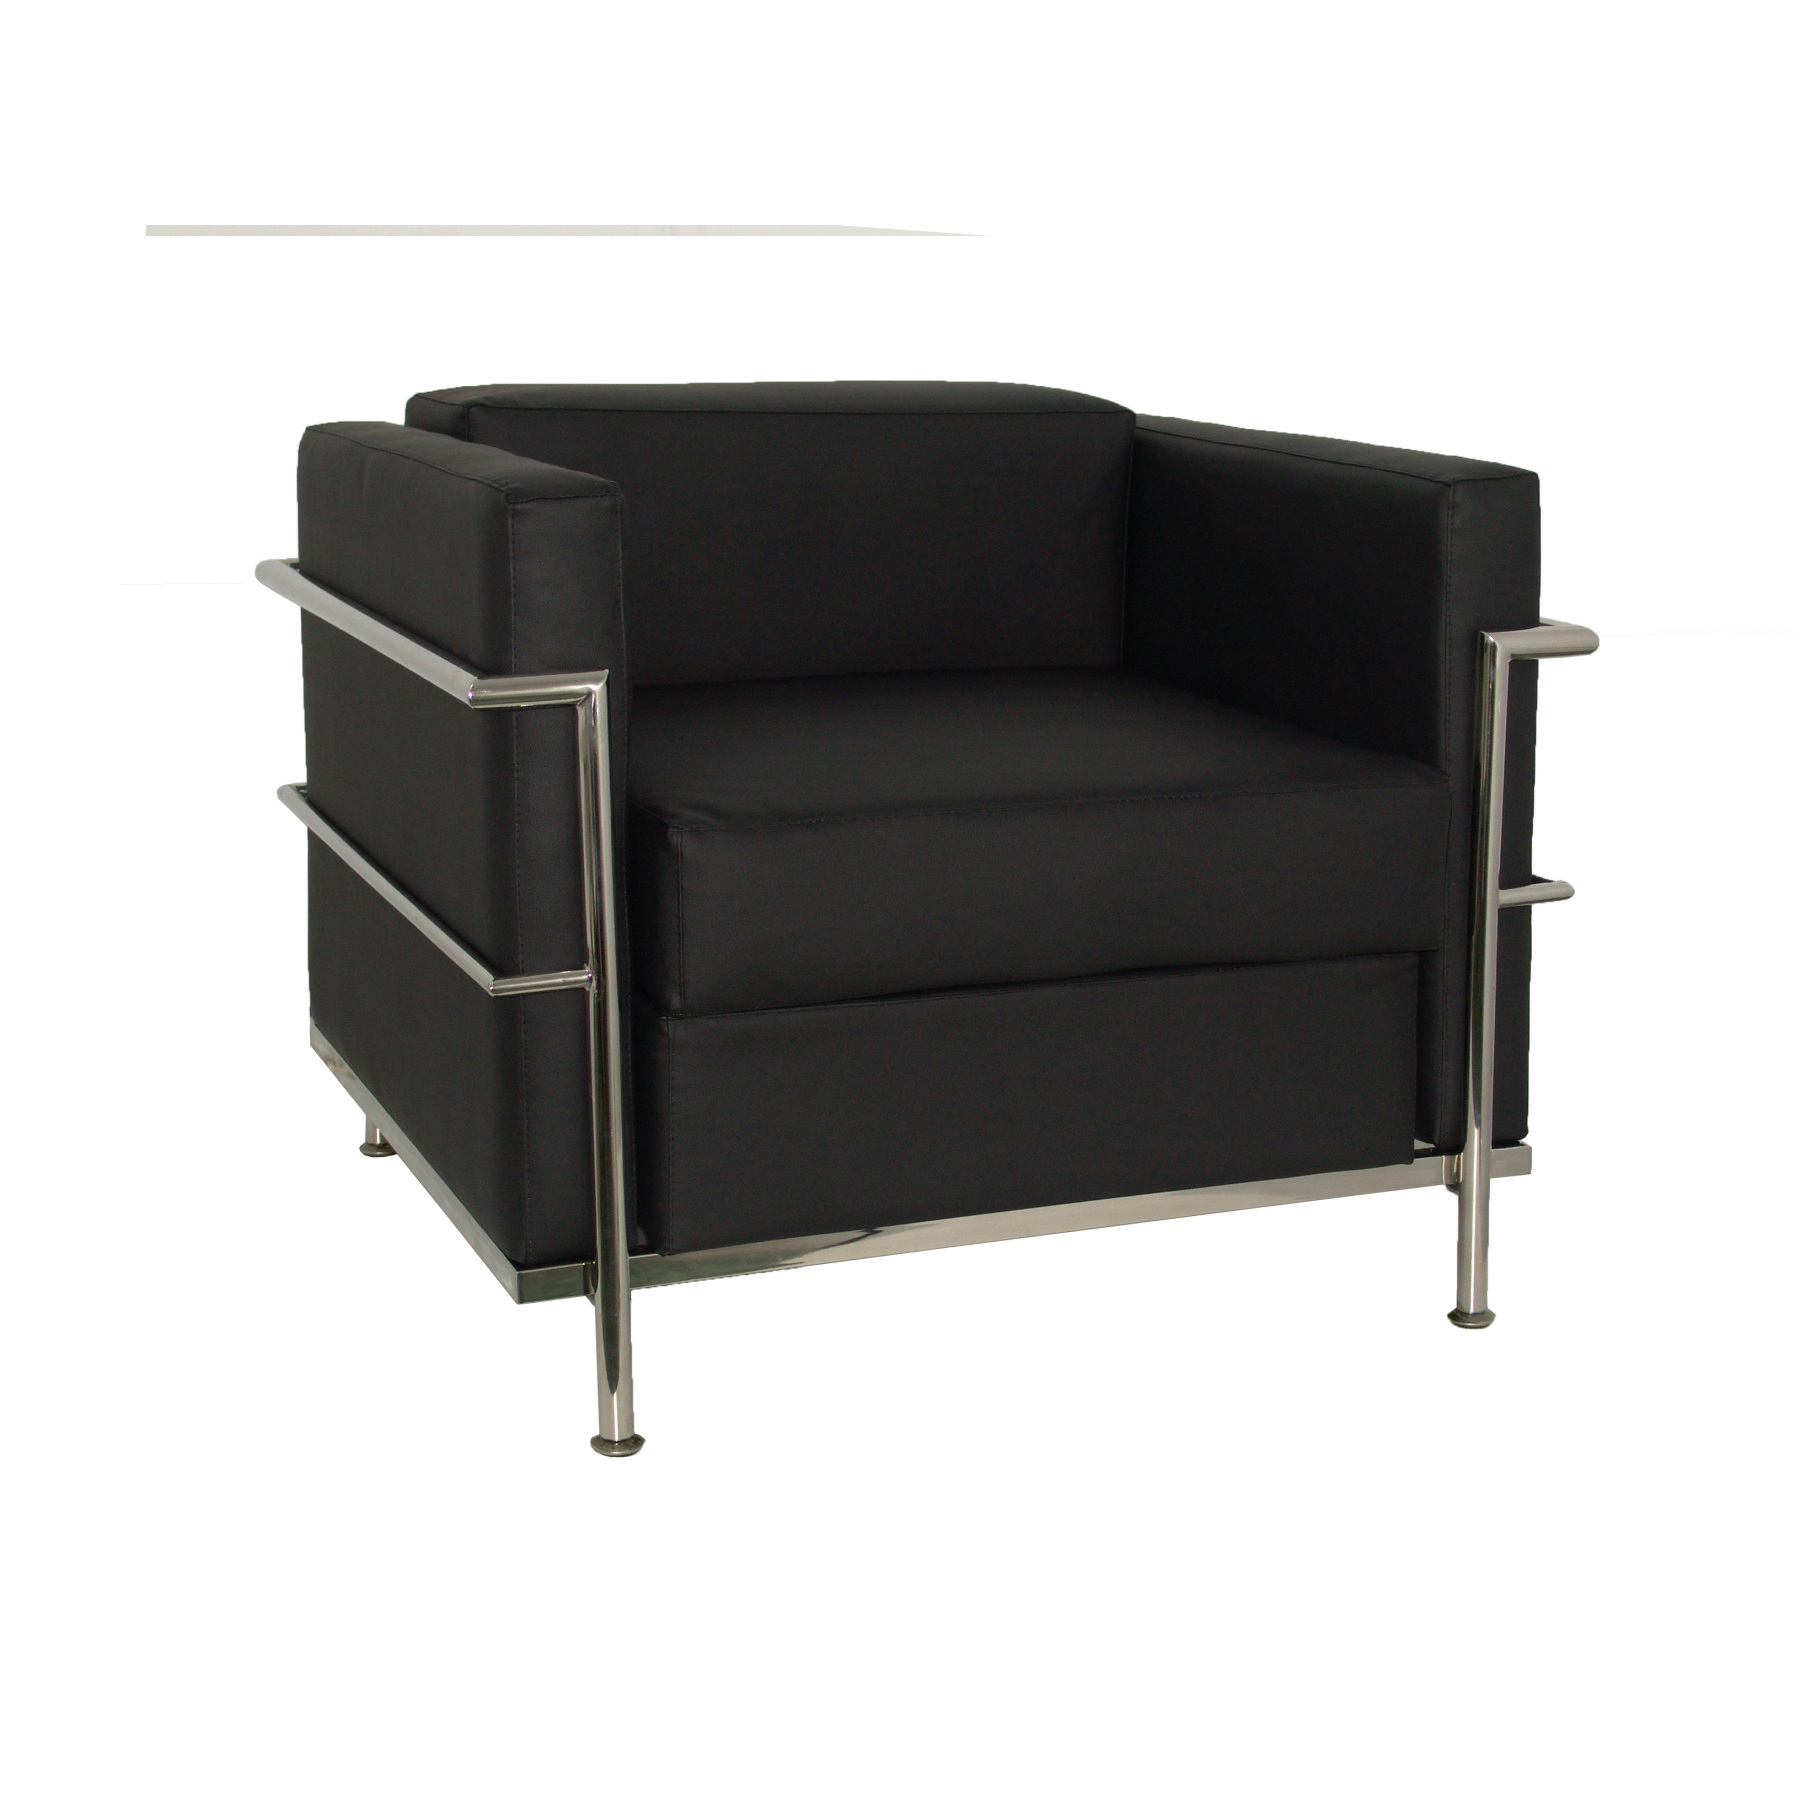 Sofa De Modulo/waiting One Square Upholstery In Similpiel Color Black TAPHOLE AND CURLED Model Nerpio